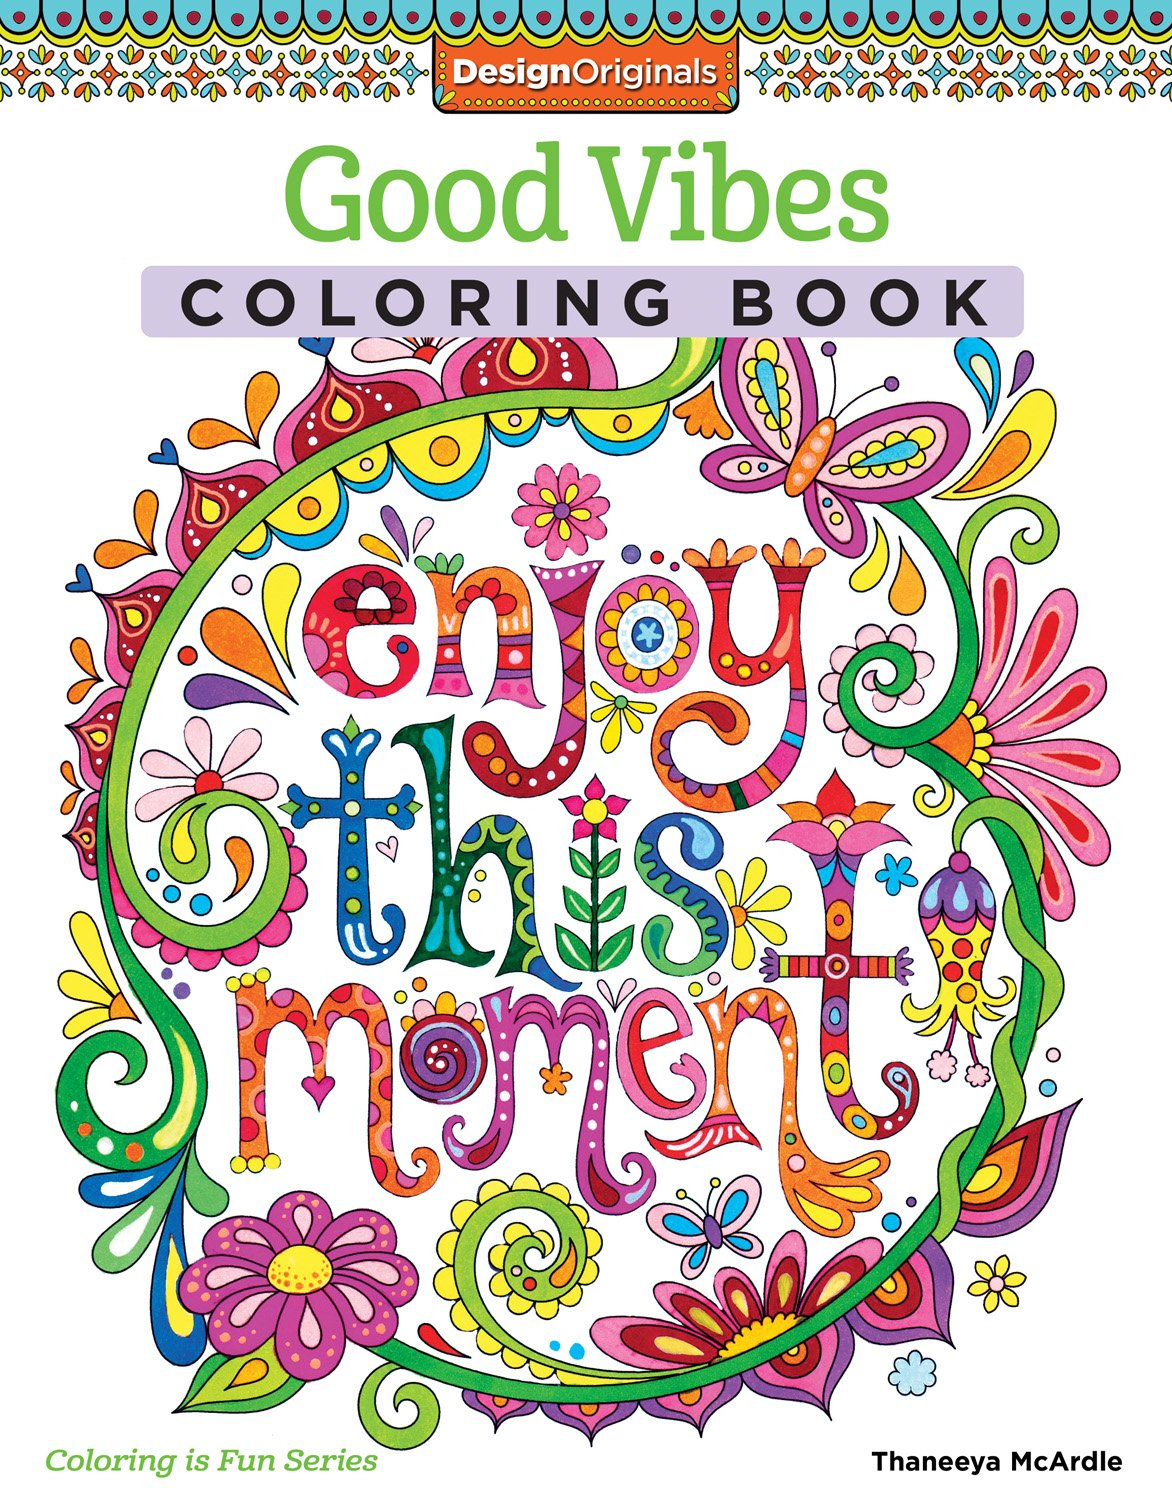 Good Vibes Adult Coloring Book From Amazon